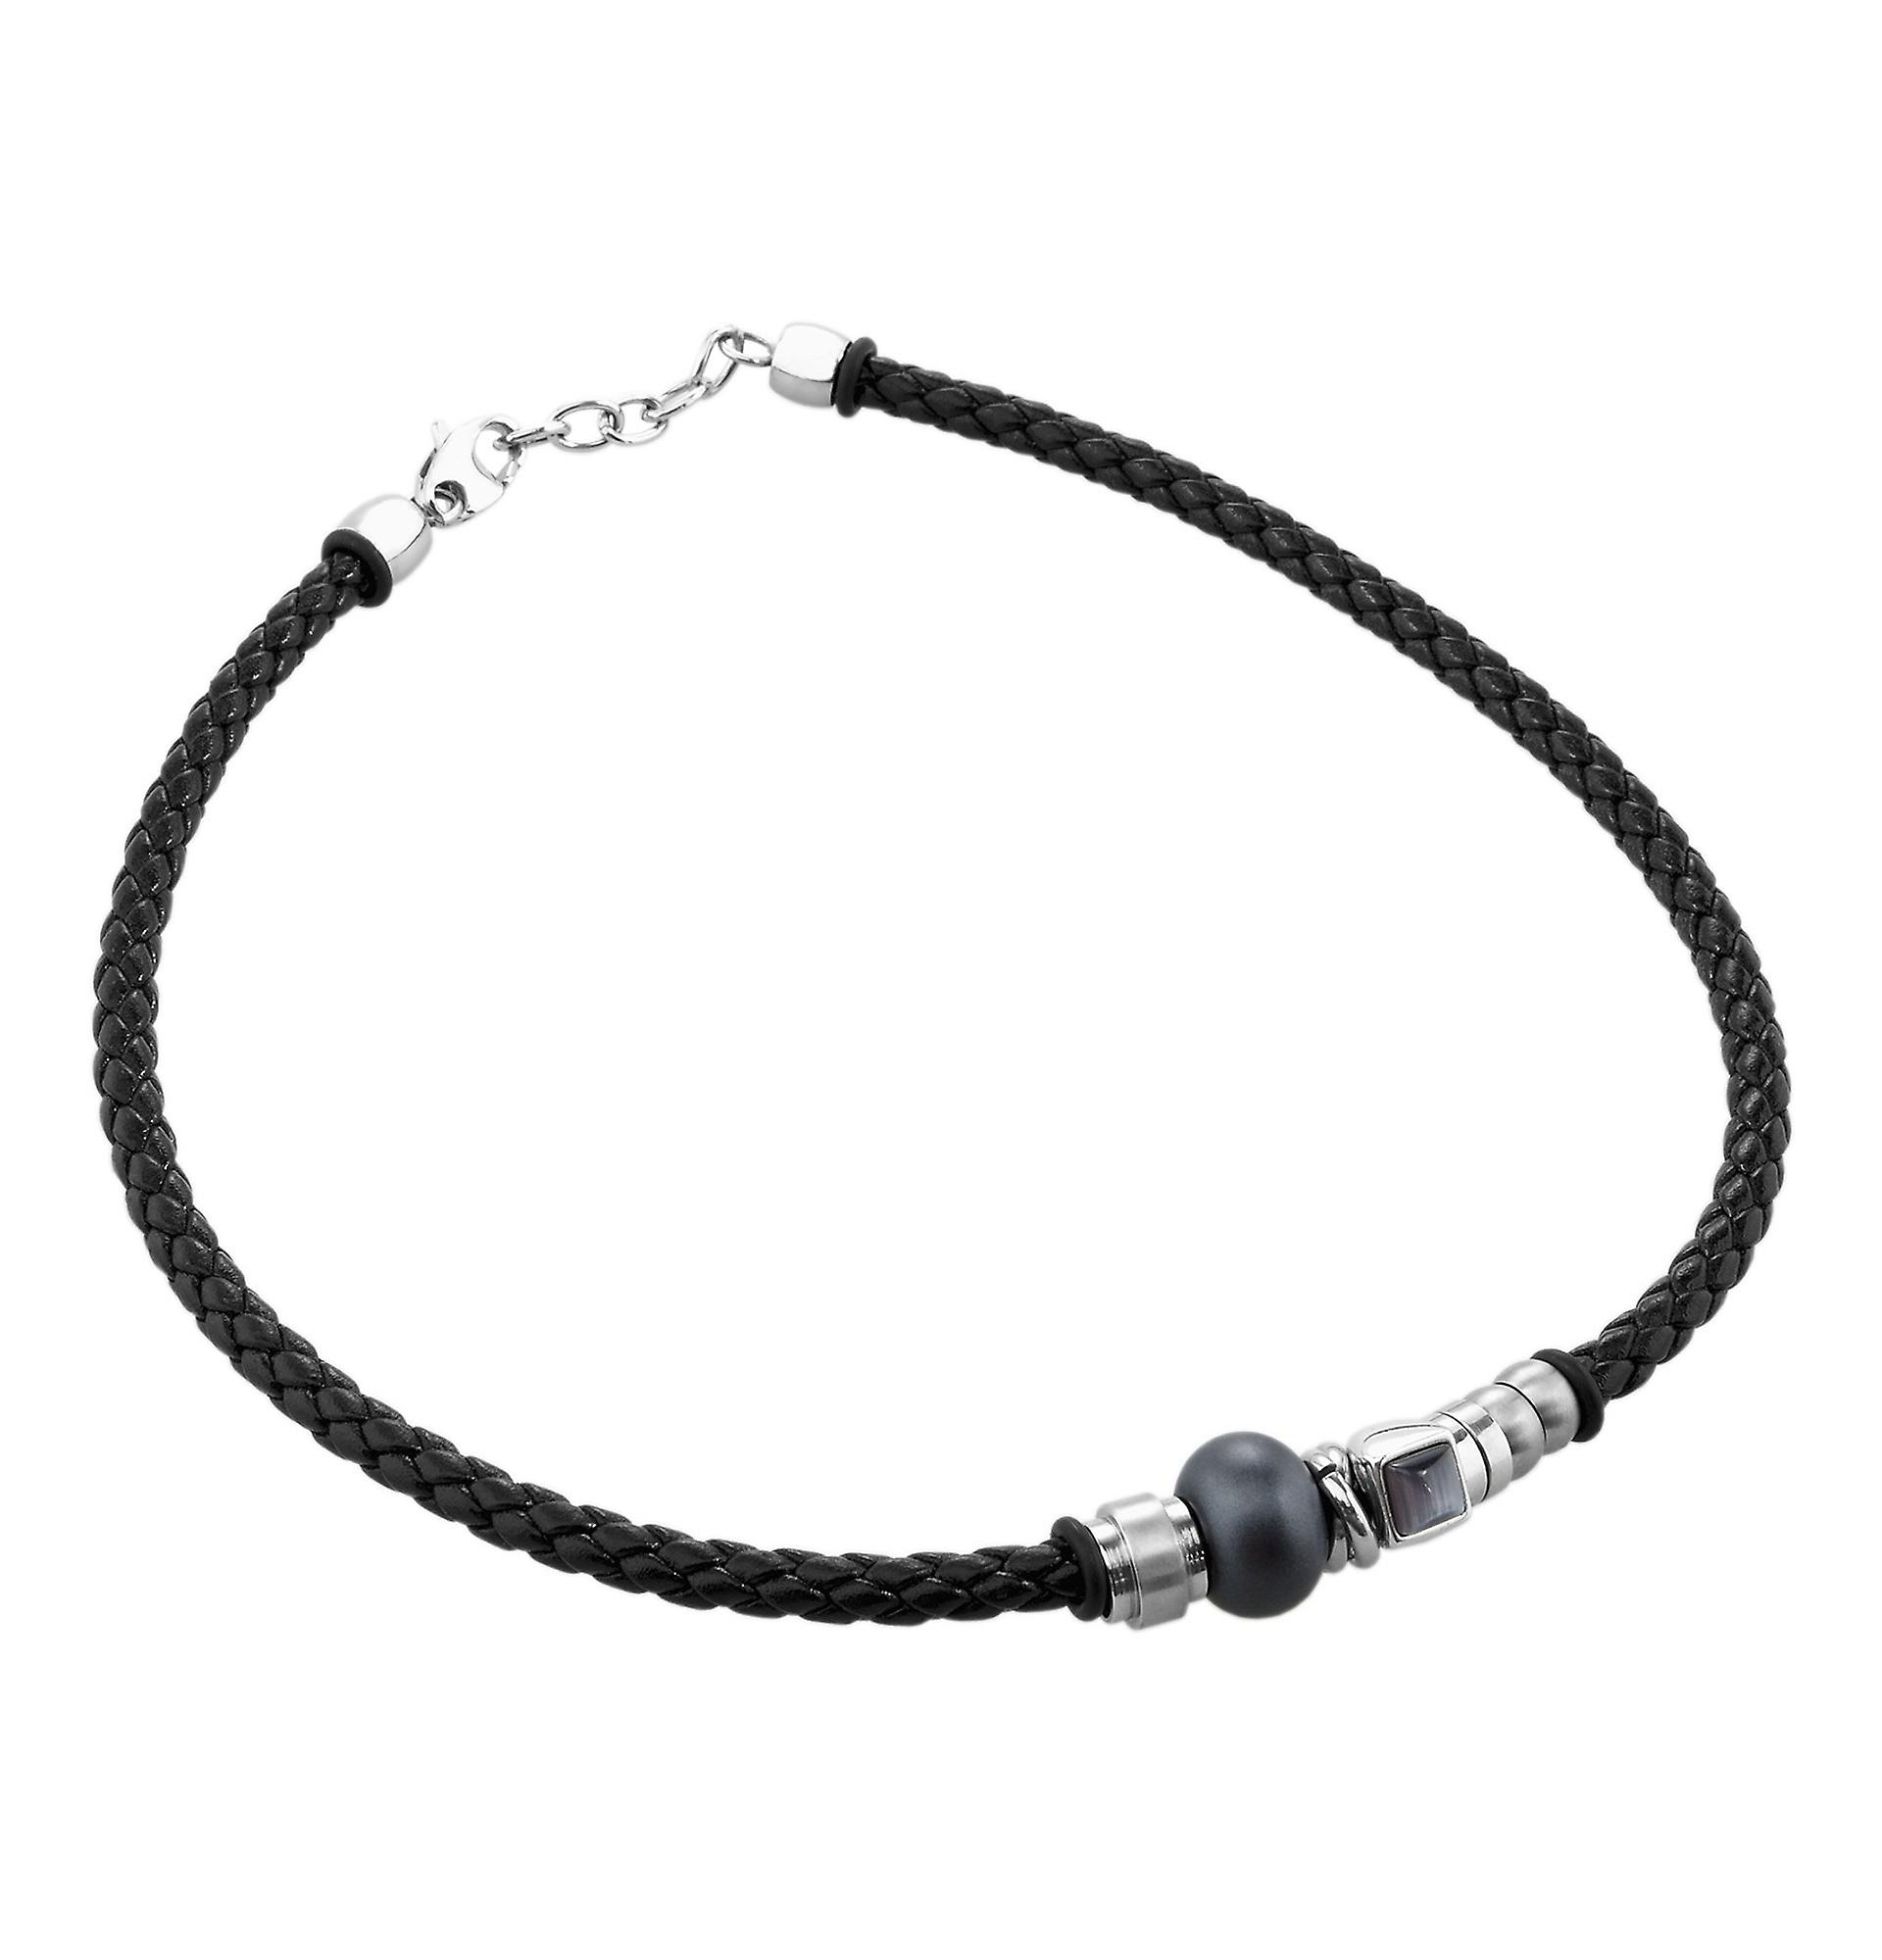 Burgmeister leather collier and stainless steel snap hook JBM1168-448